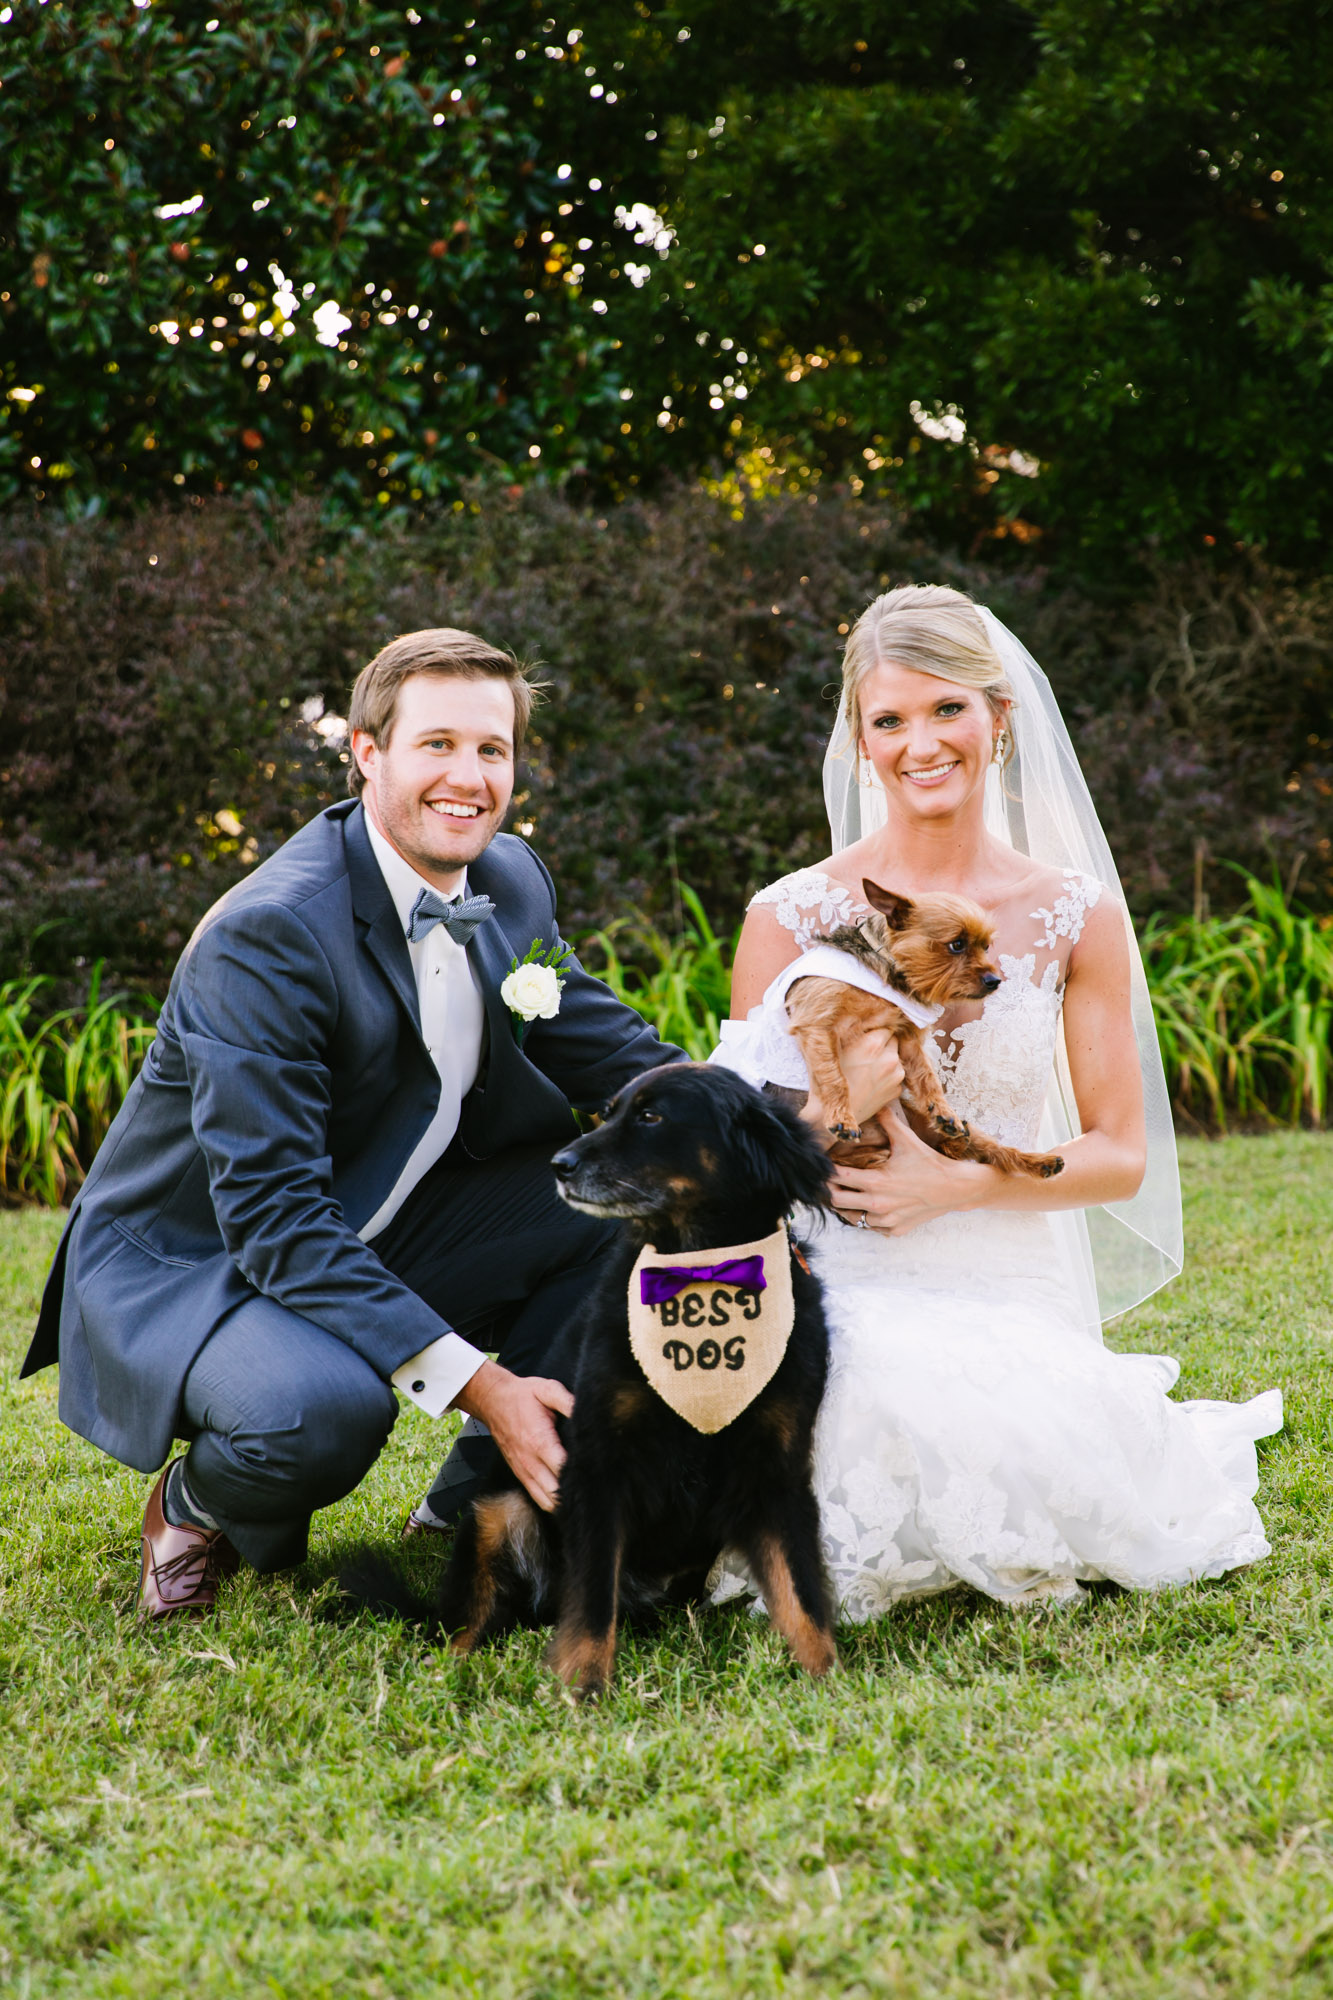 Waynesville, NC Wedding Photography | Bride and Groom with their dogs